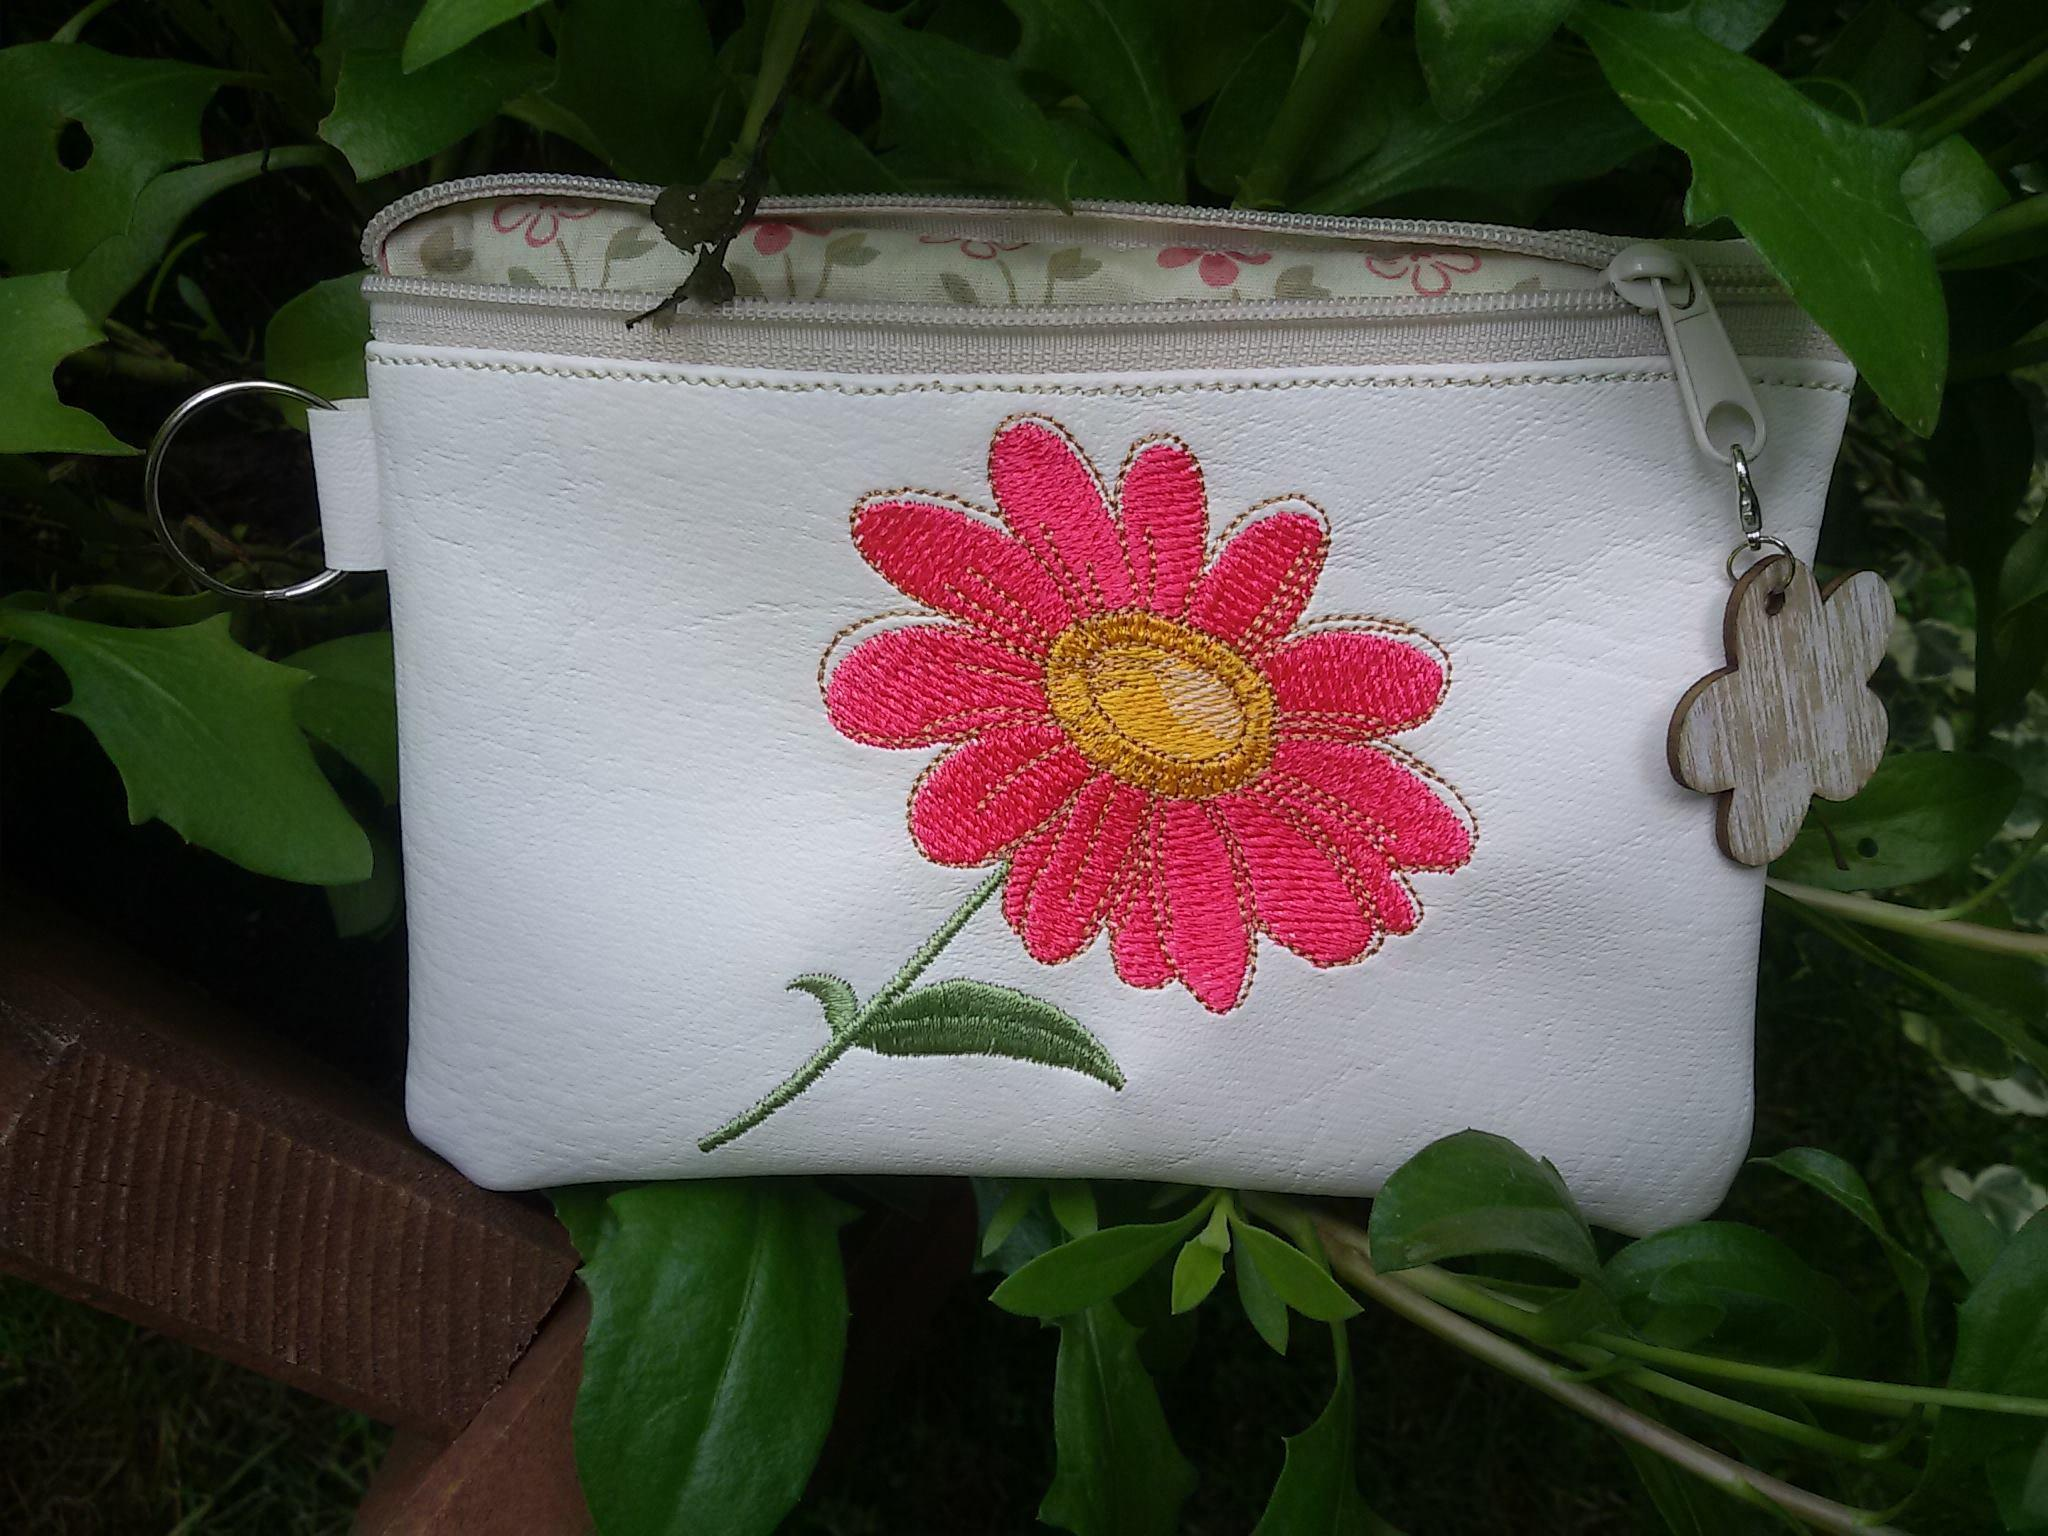 Embroidered handbag with Pink flower design